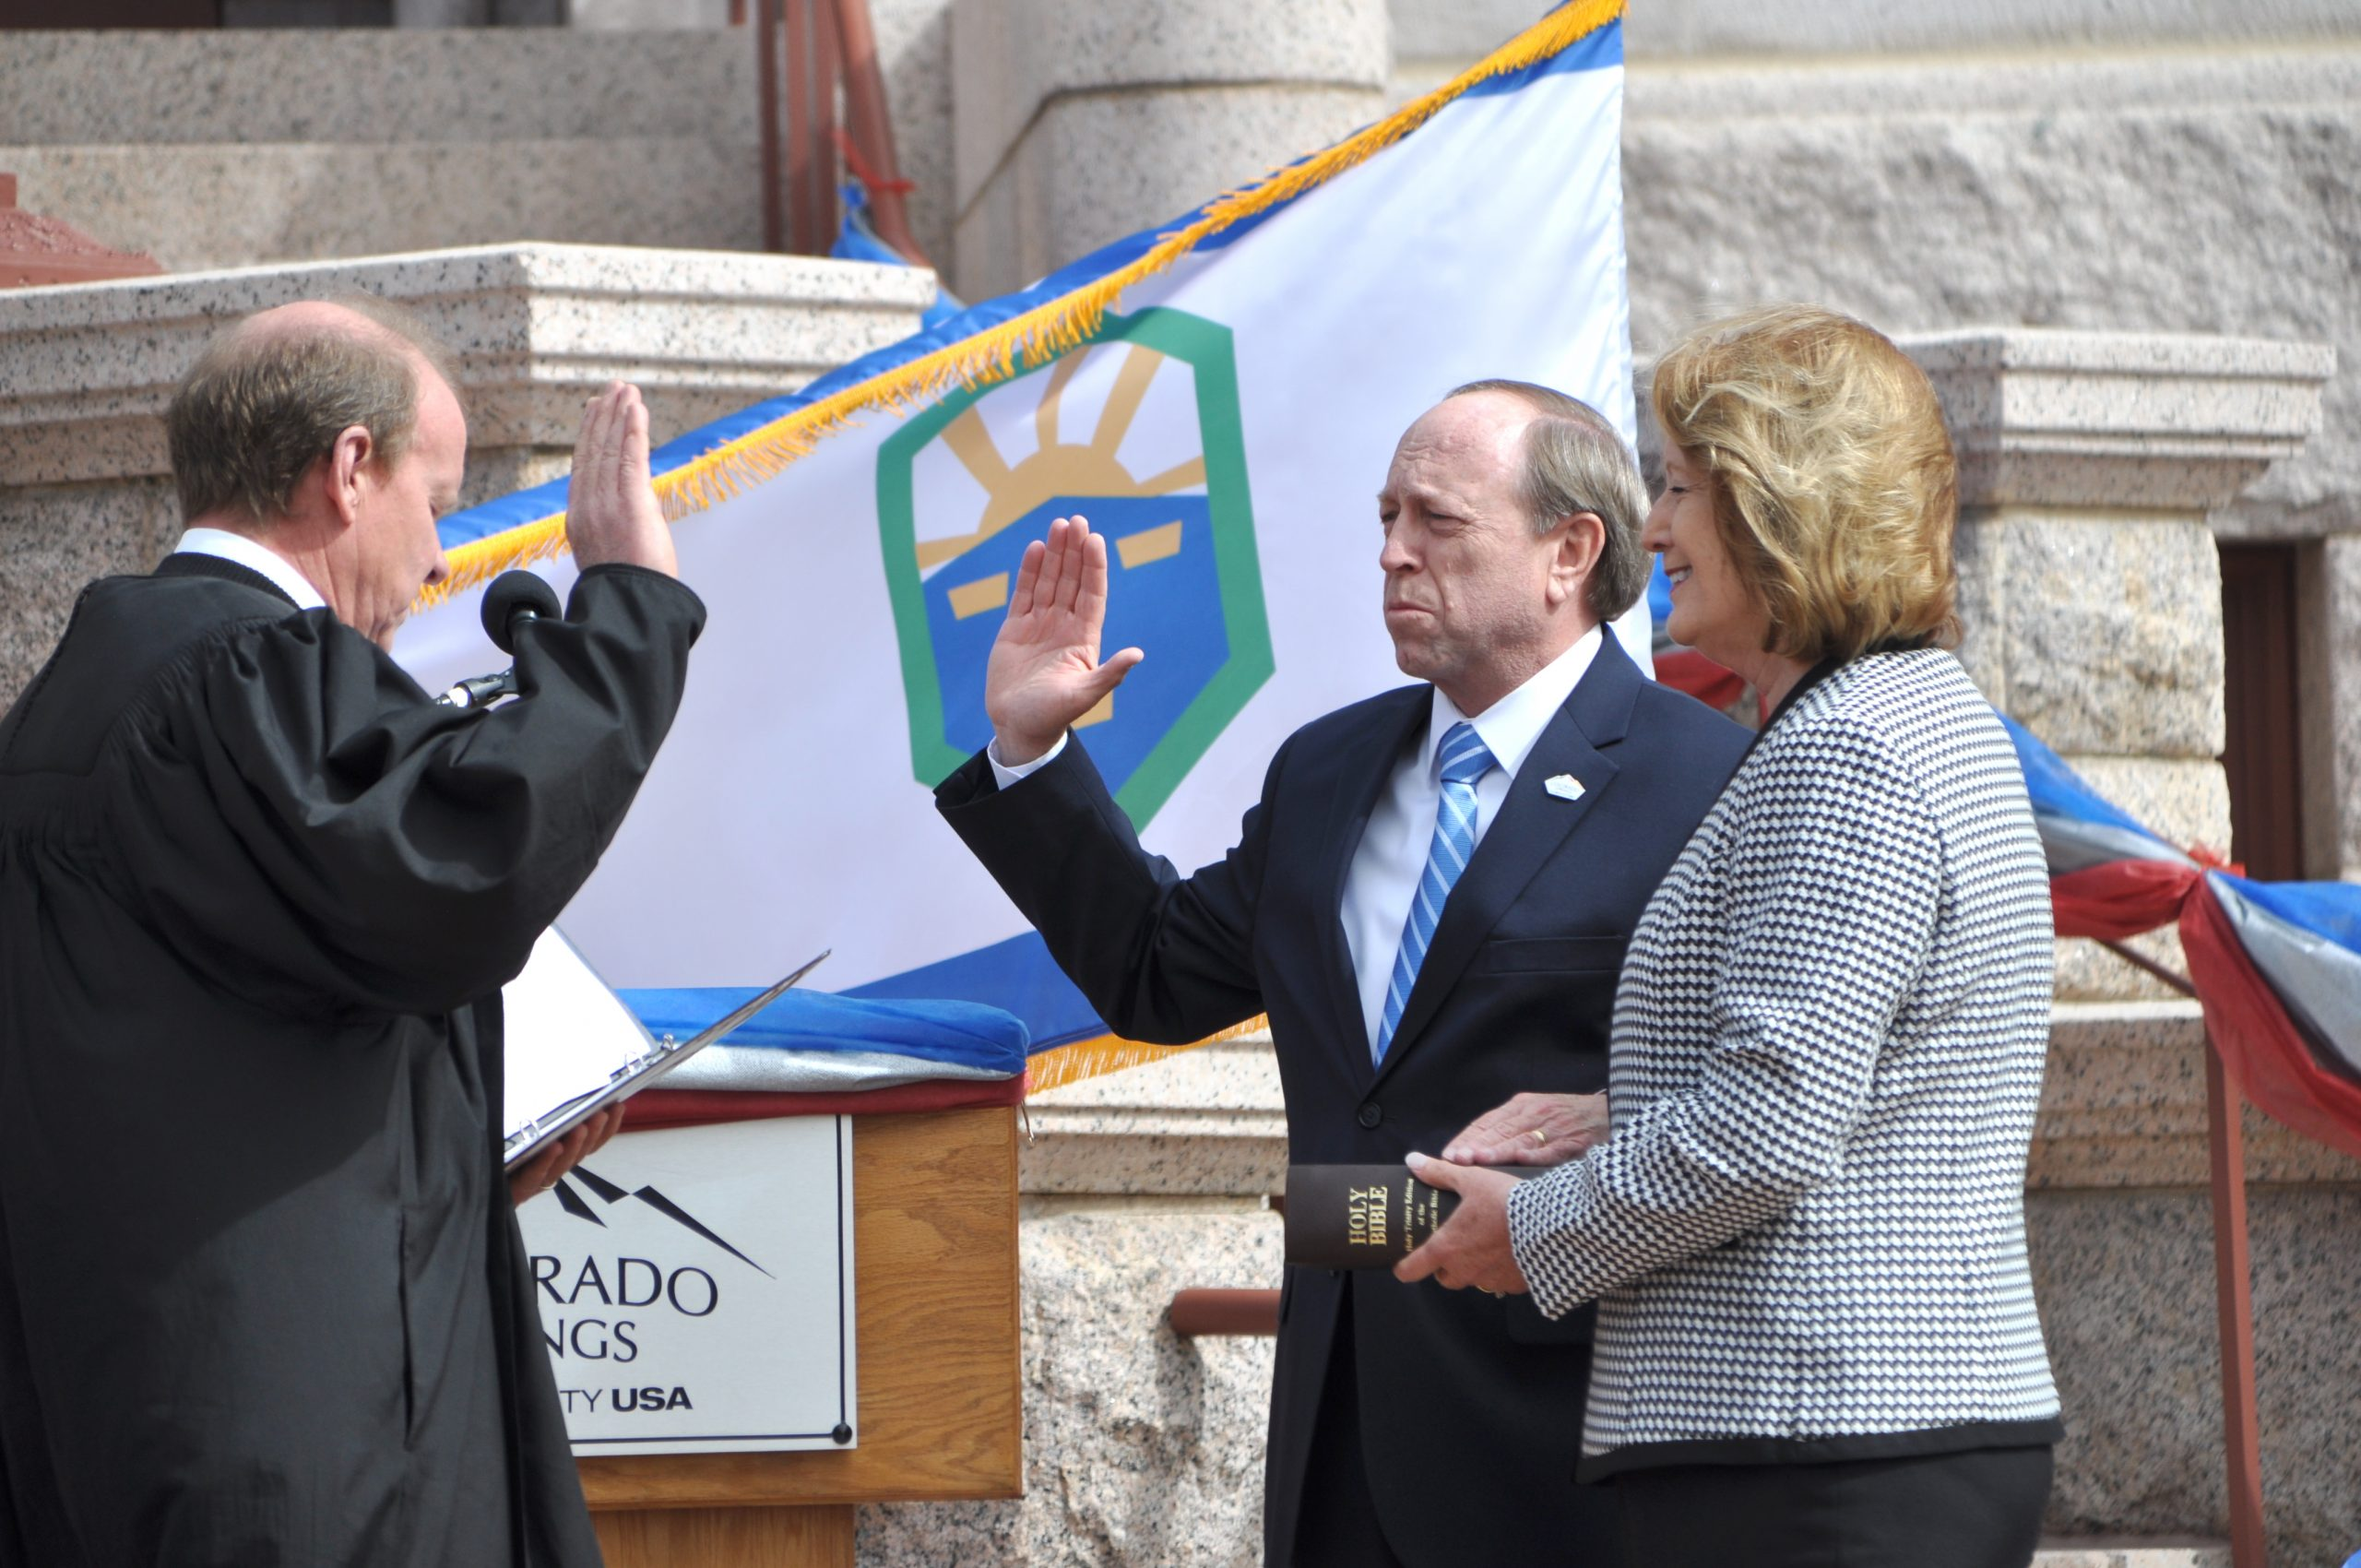 Judge HayDen Kane administers the oath of office to Colorado Springs mayor John Suthers, who is joined by first lady Janet Suthers.